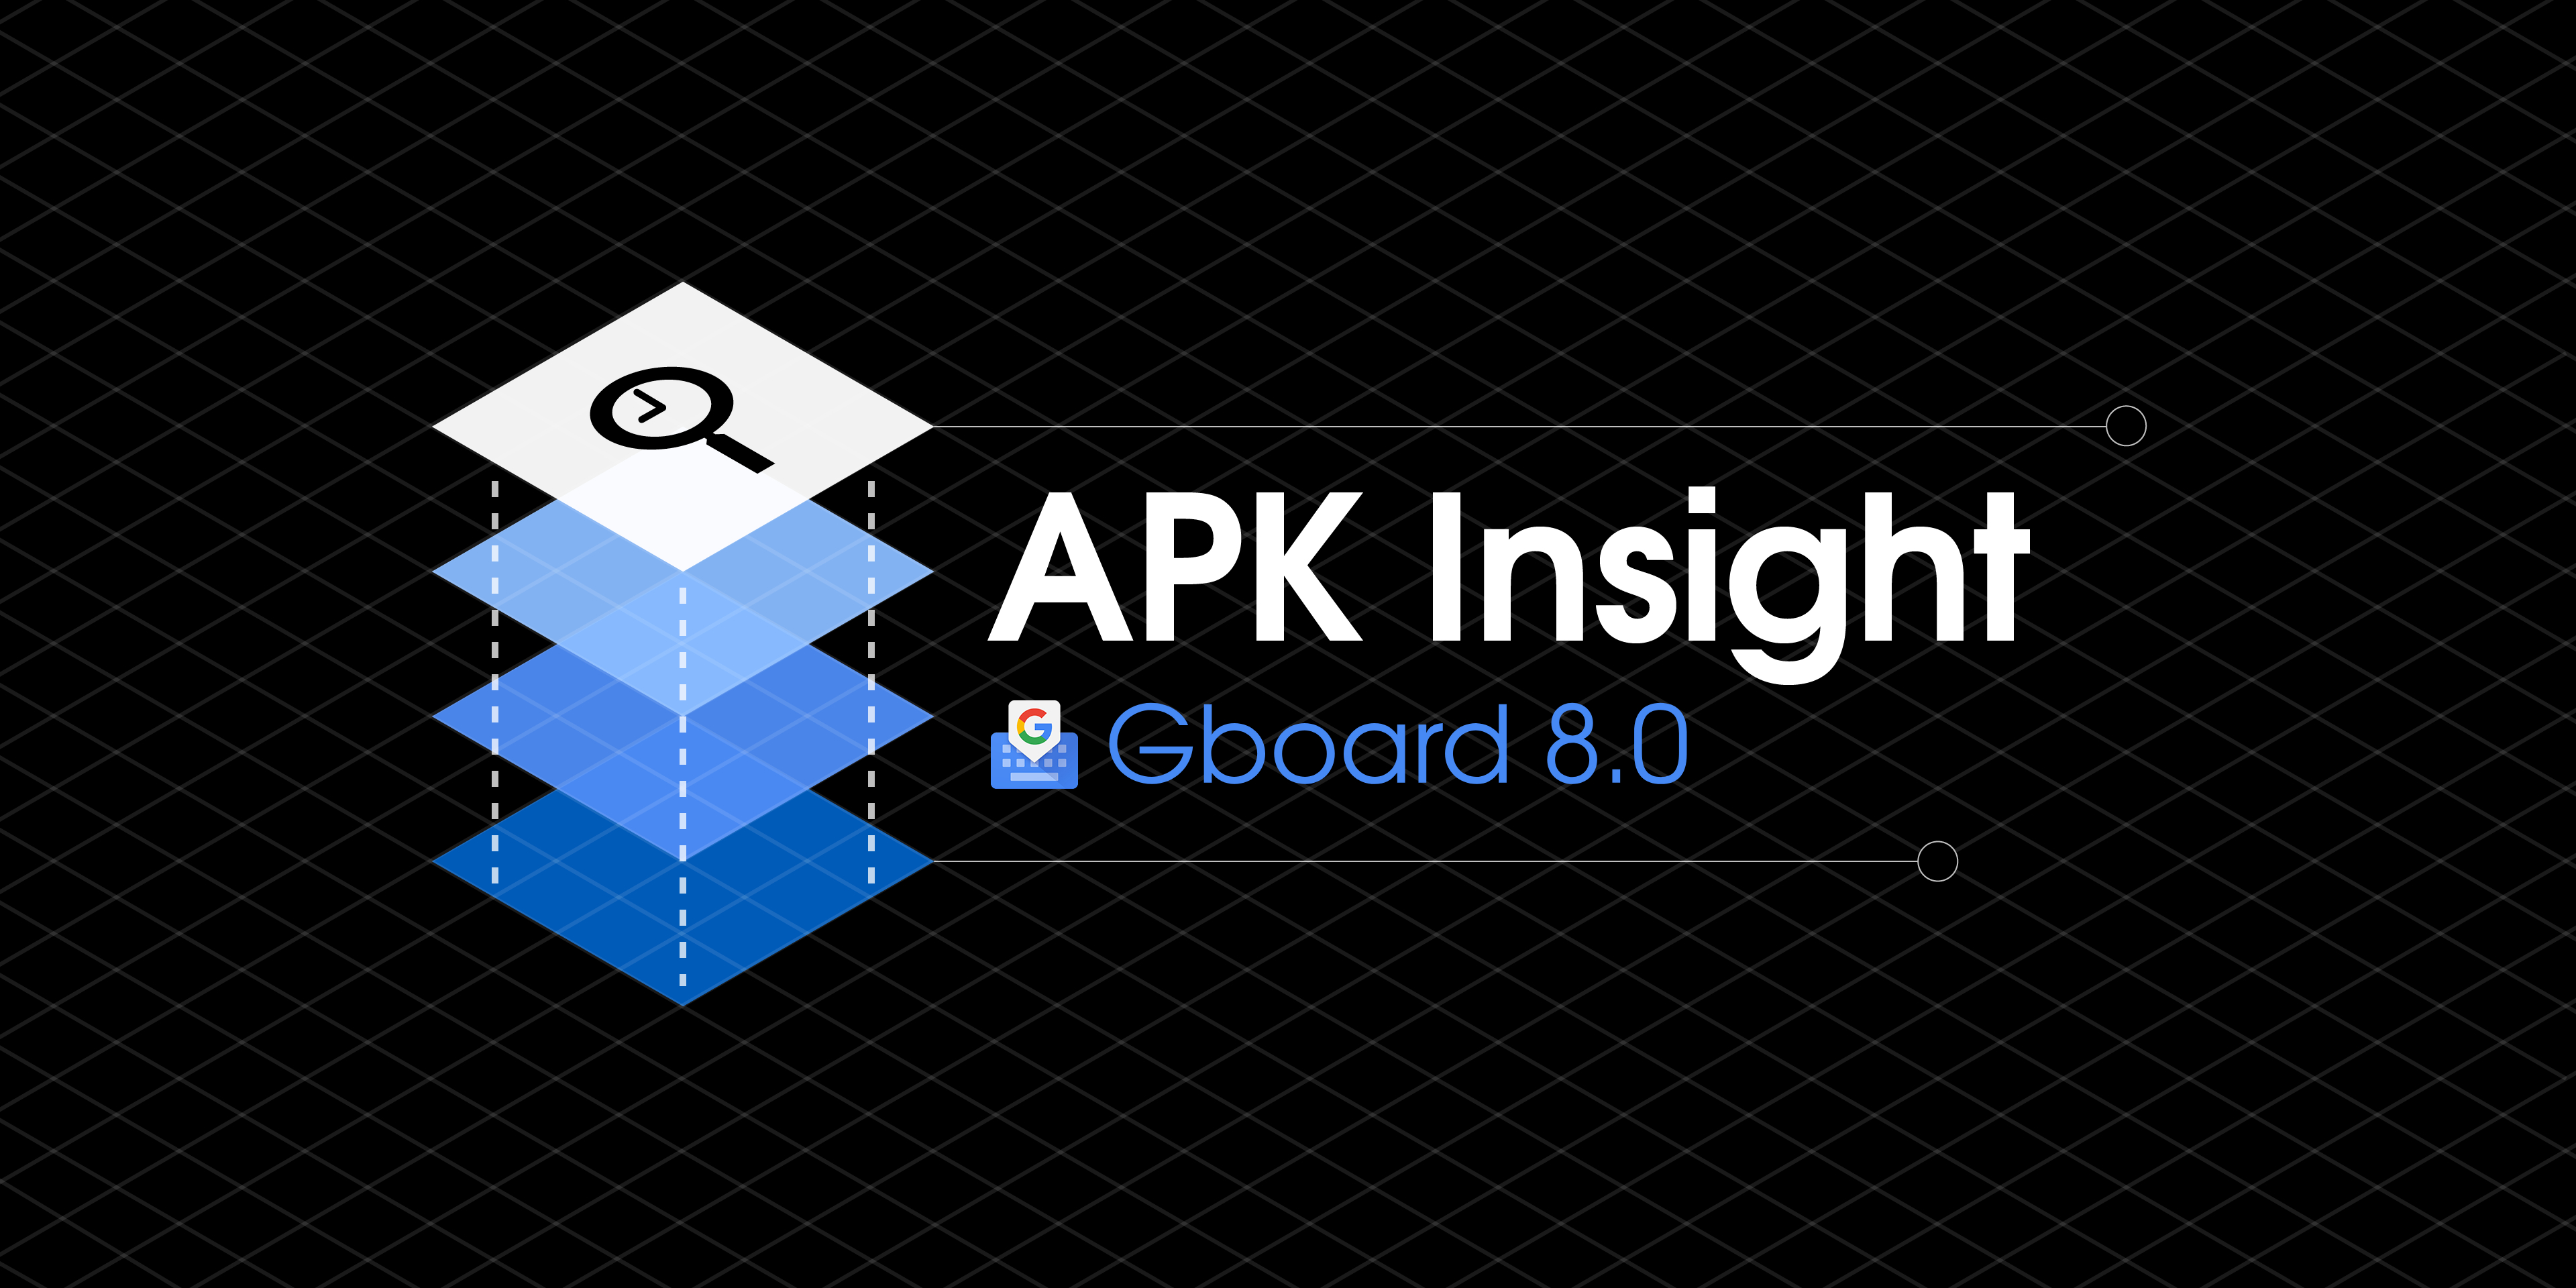 Gboard 8.0 preps Clipboard w/ one hour history & pausing, sharing languages, more [APK Insight]